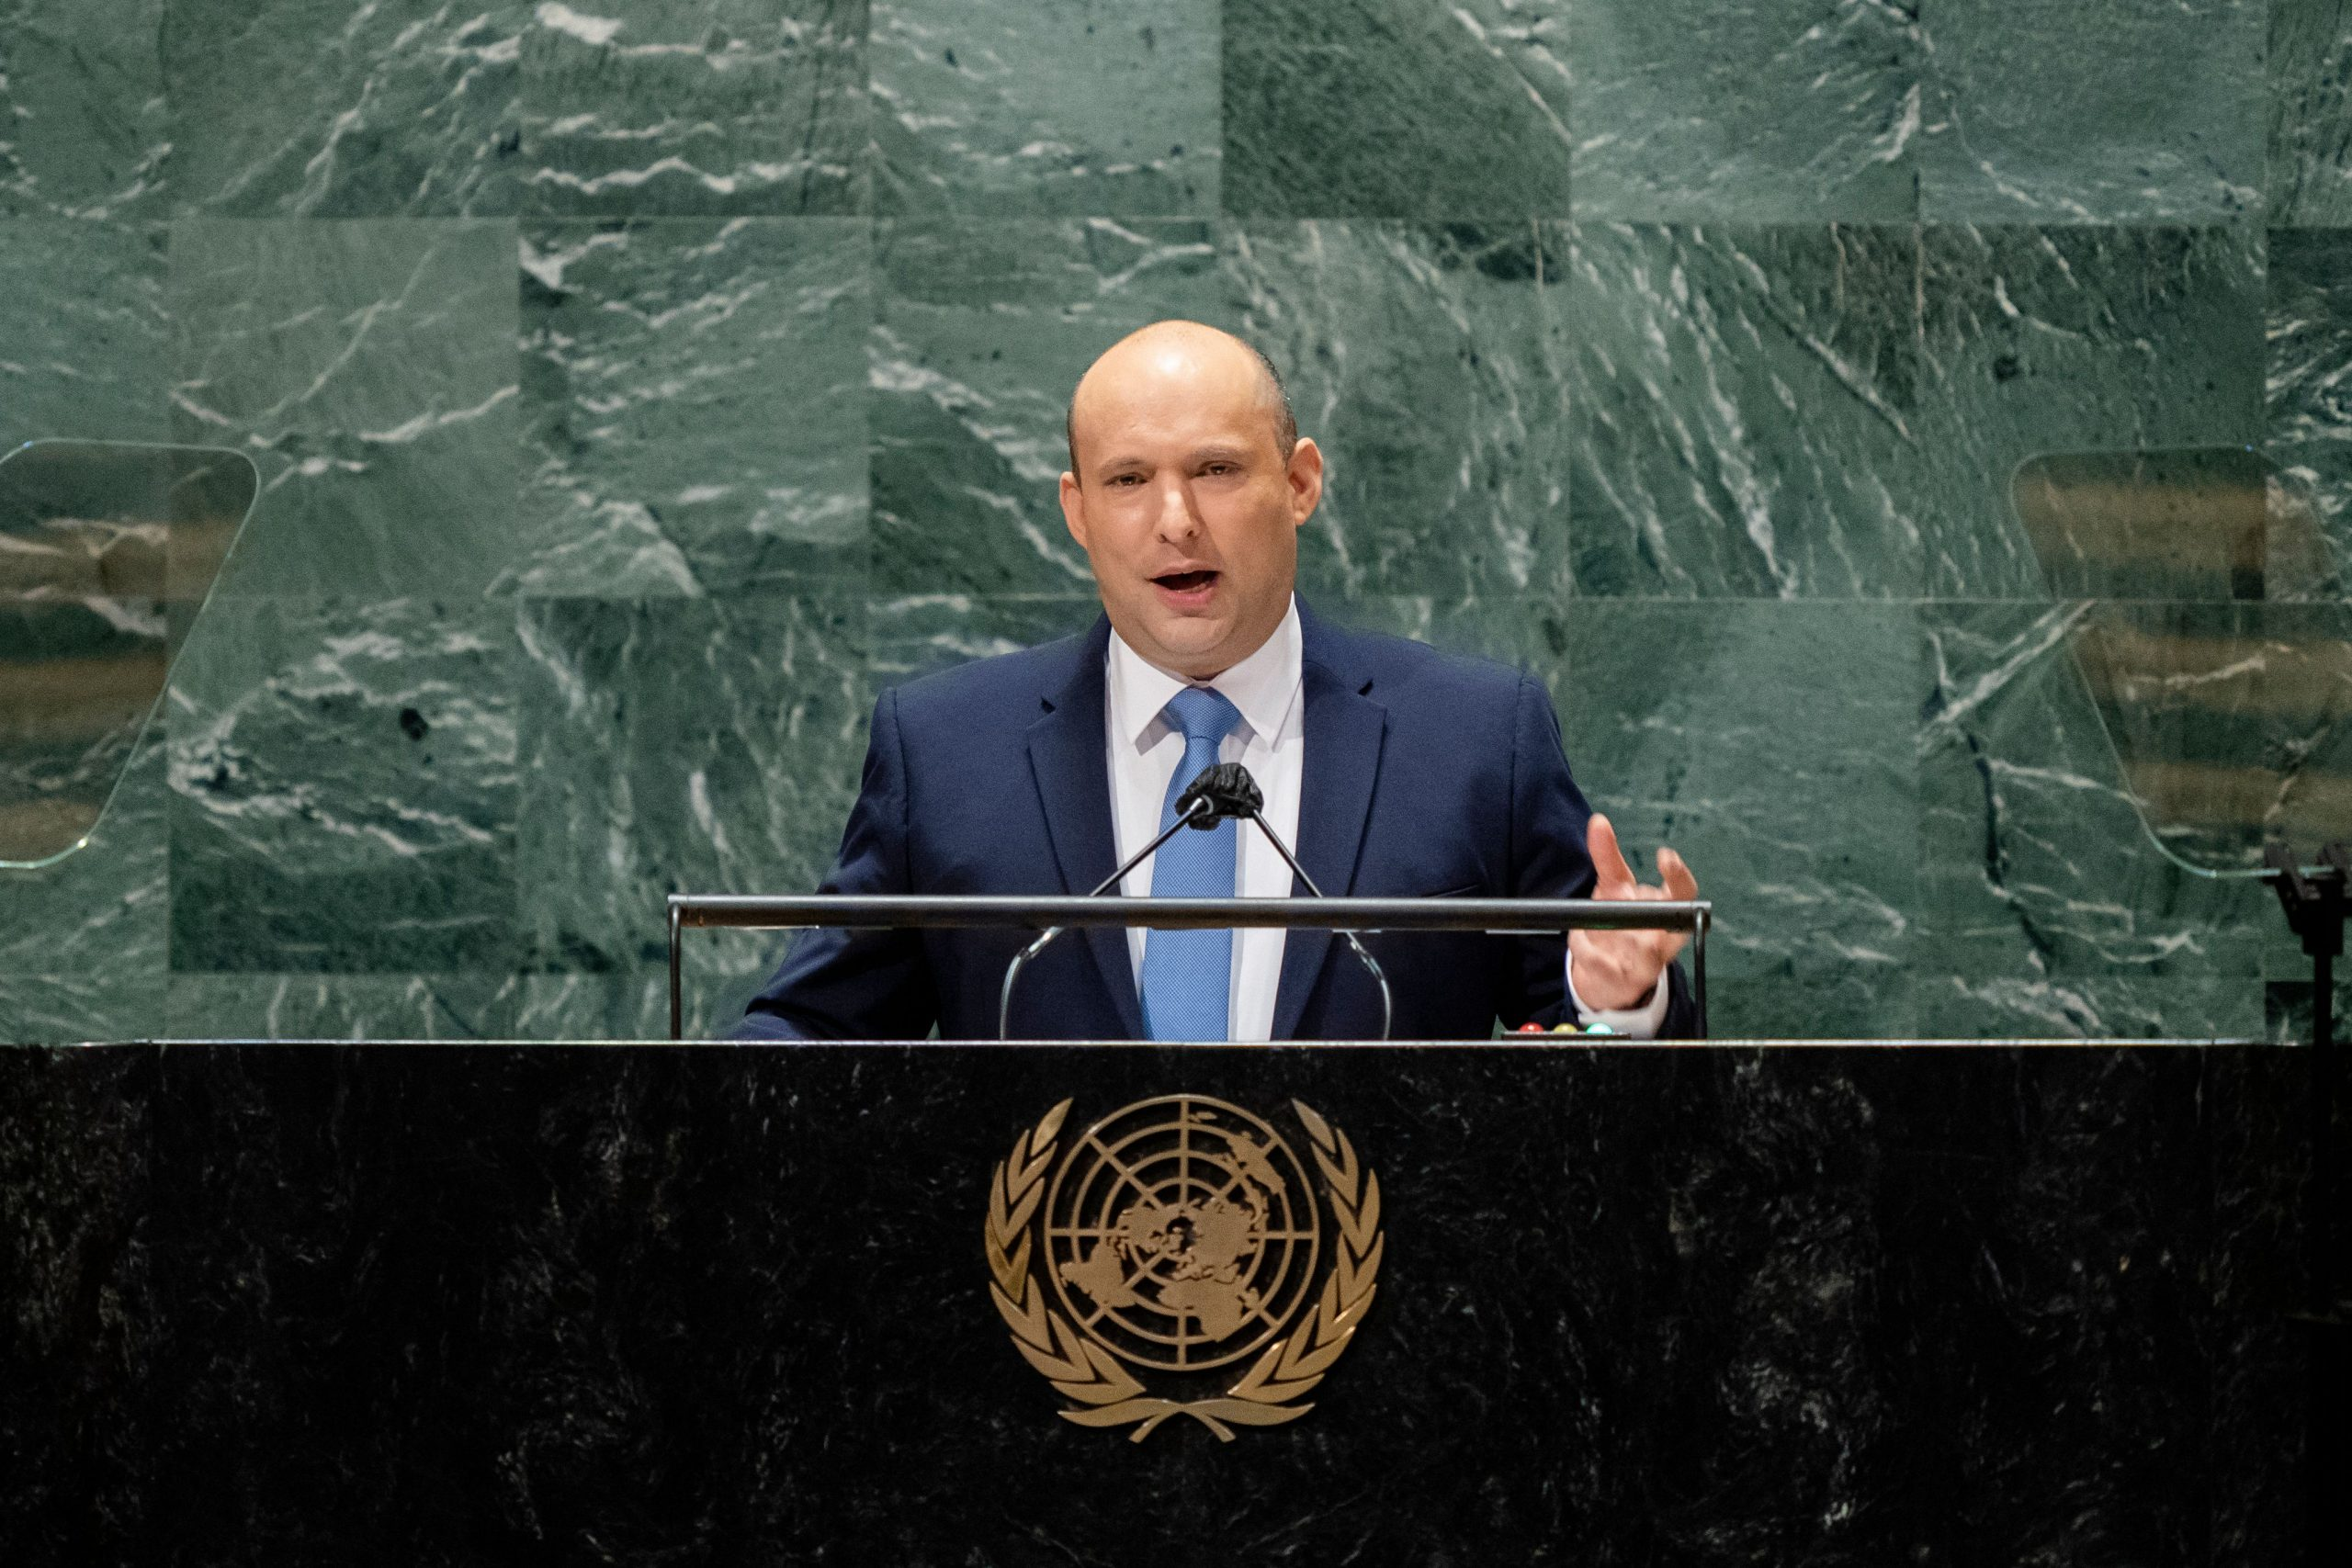 Israels prime minister Naftali Bennett addresses the 76th Session of the United Nations General Assembly, on September 27, 2021, at UN headquarters in New York. (Photo by JOHN MINCHILLO/POOL/AFP via Getty Images)